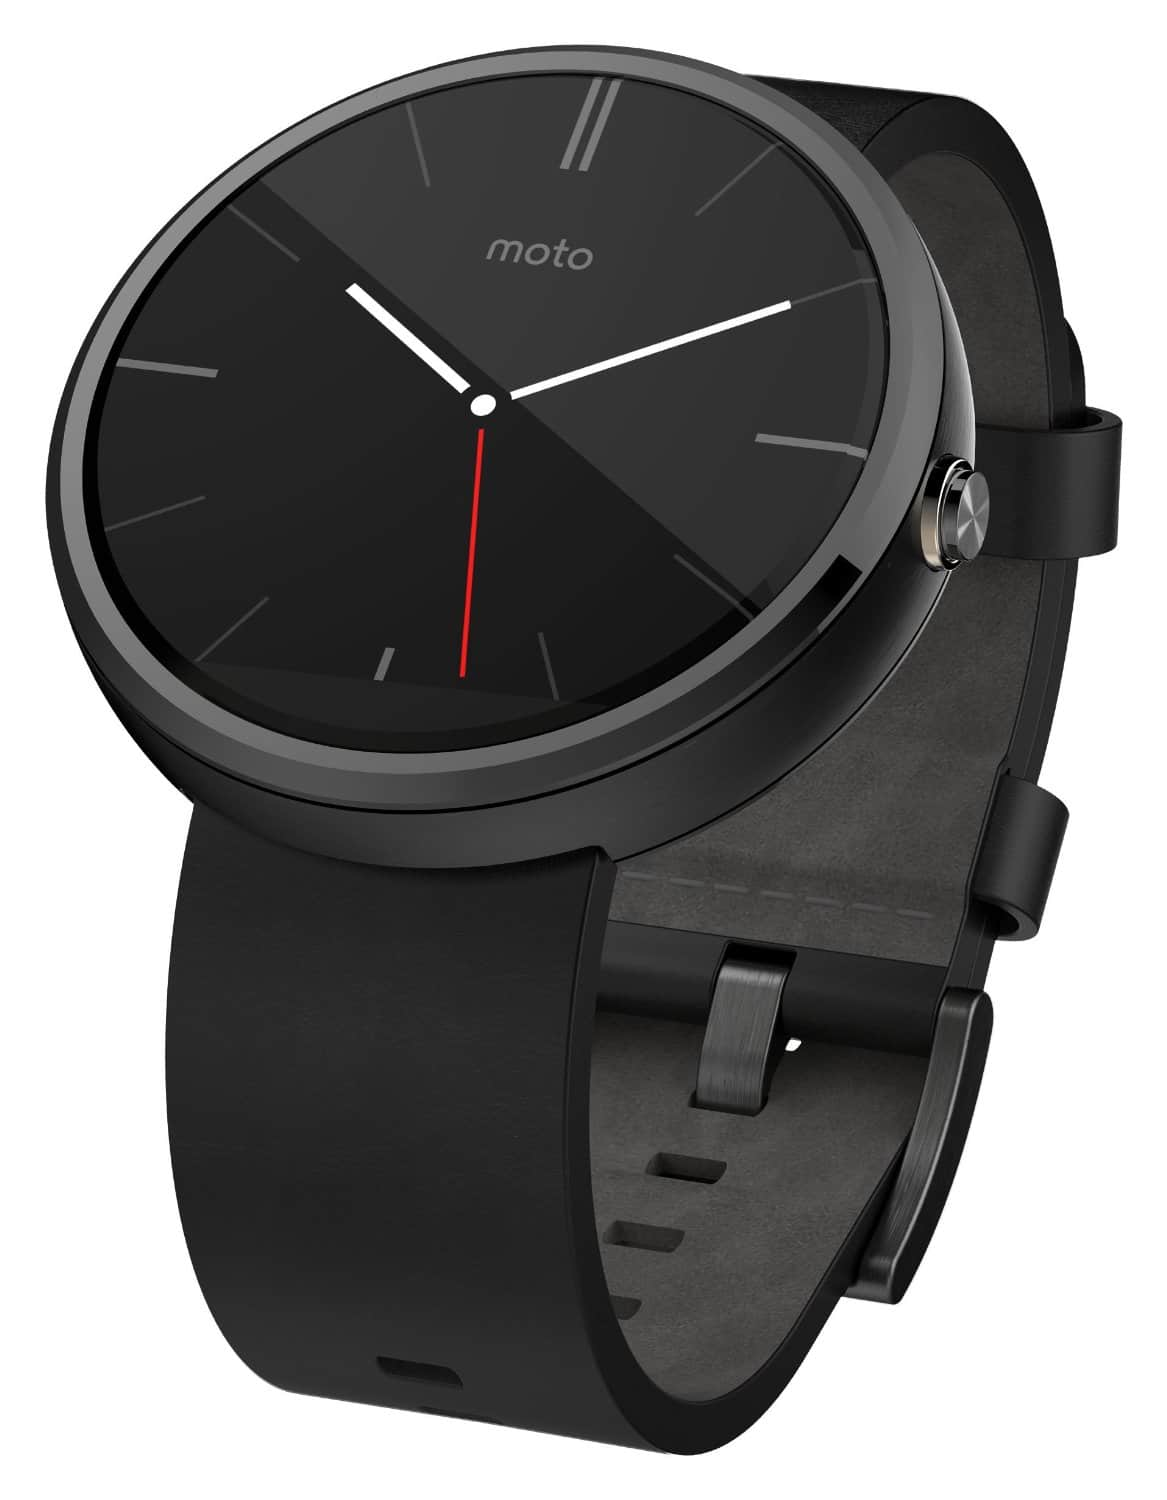 Motorola Moto 360 Smart Watch for Android Devices w/ Leather Strap  $179 + Free Shipping